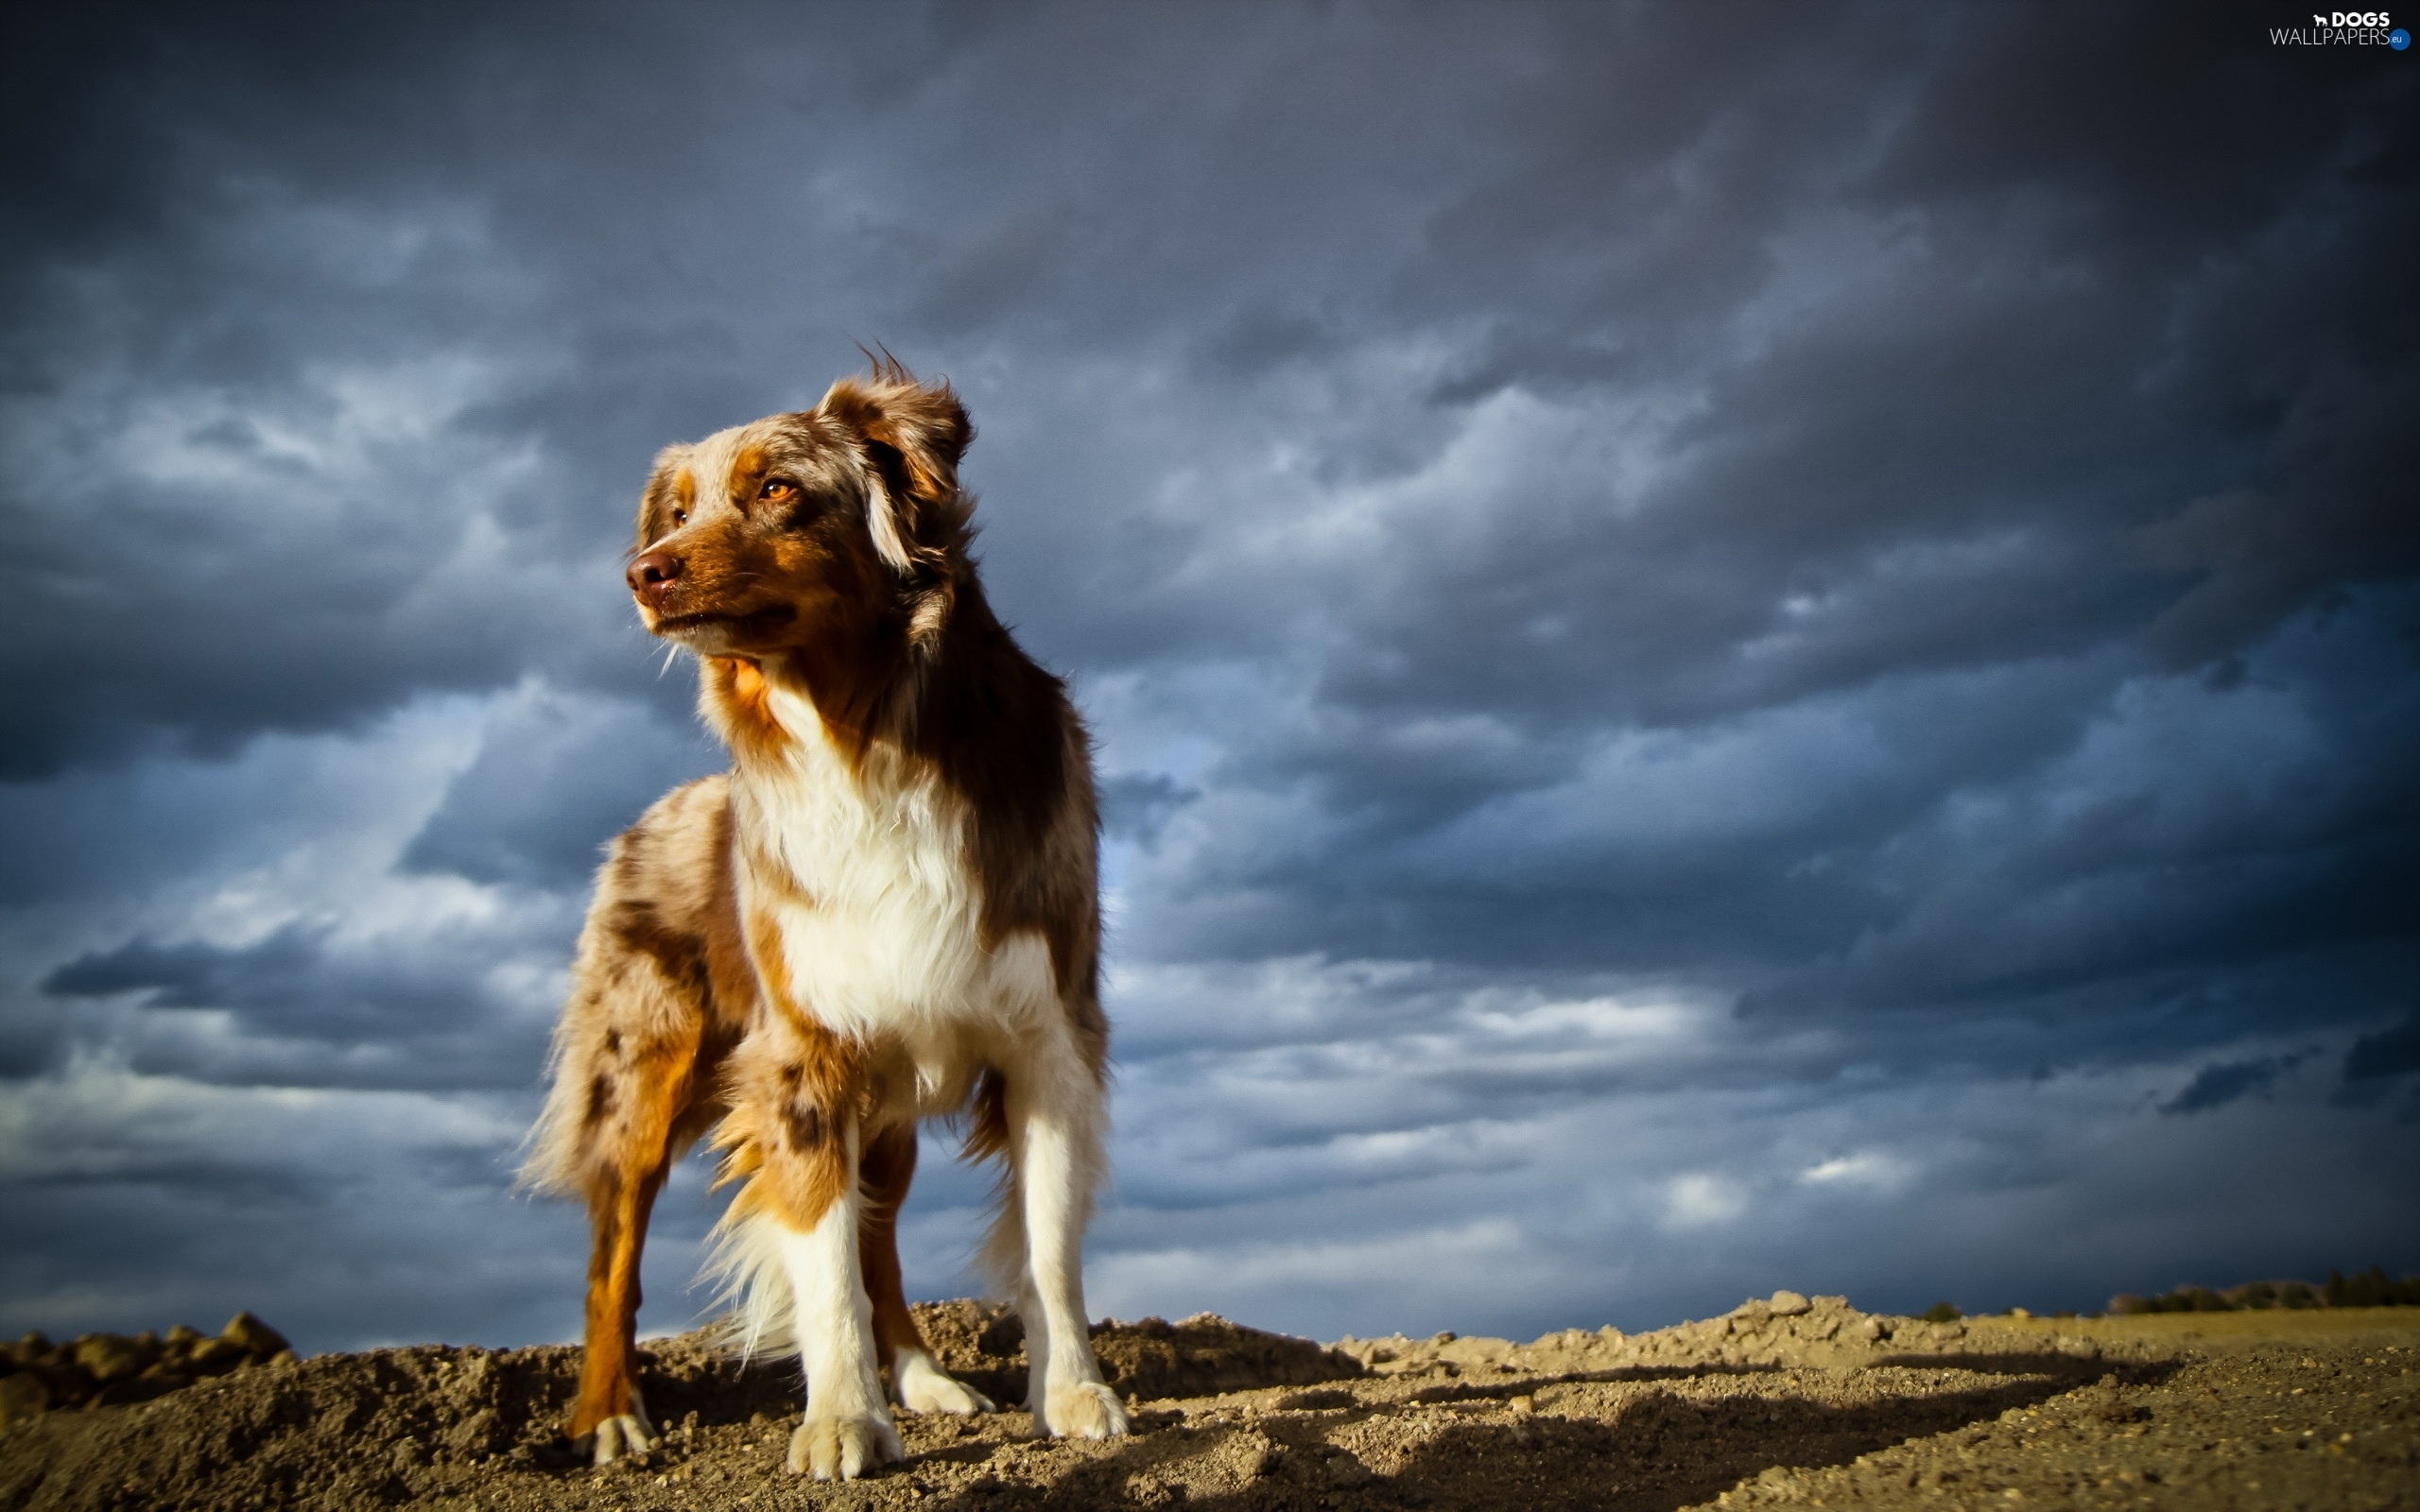 storm, clouds, dog